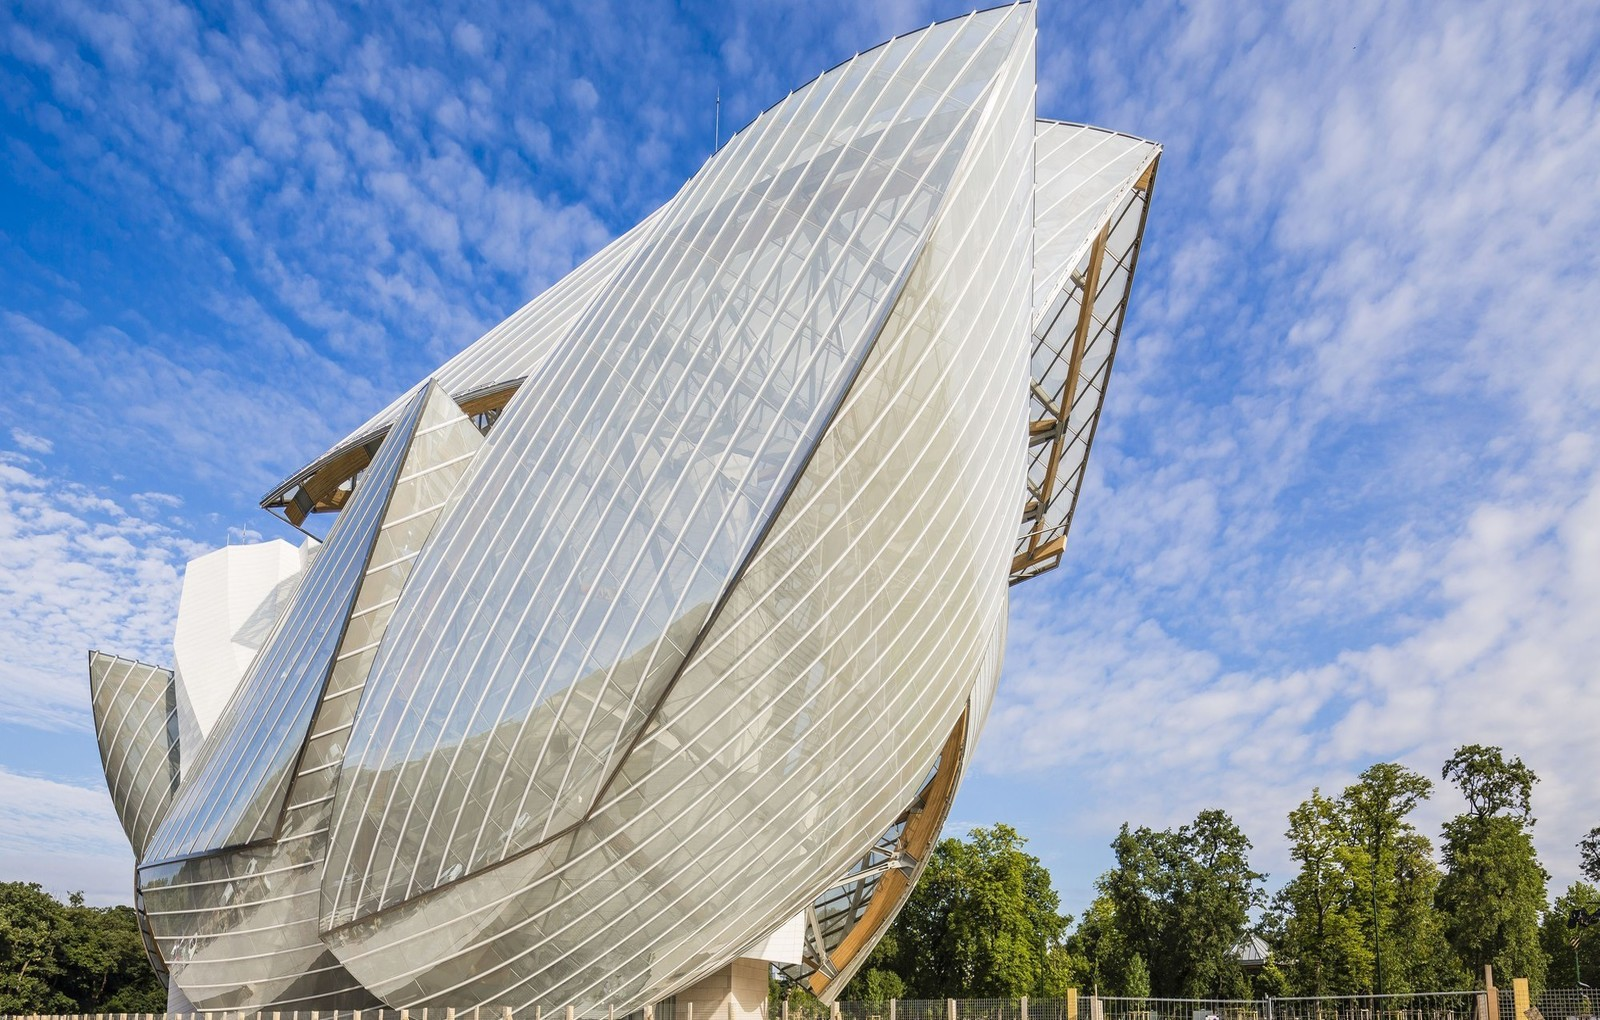 France, Paris, fondation Louis Vuitton by architect Franck Gehry